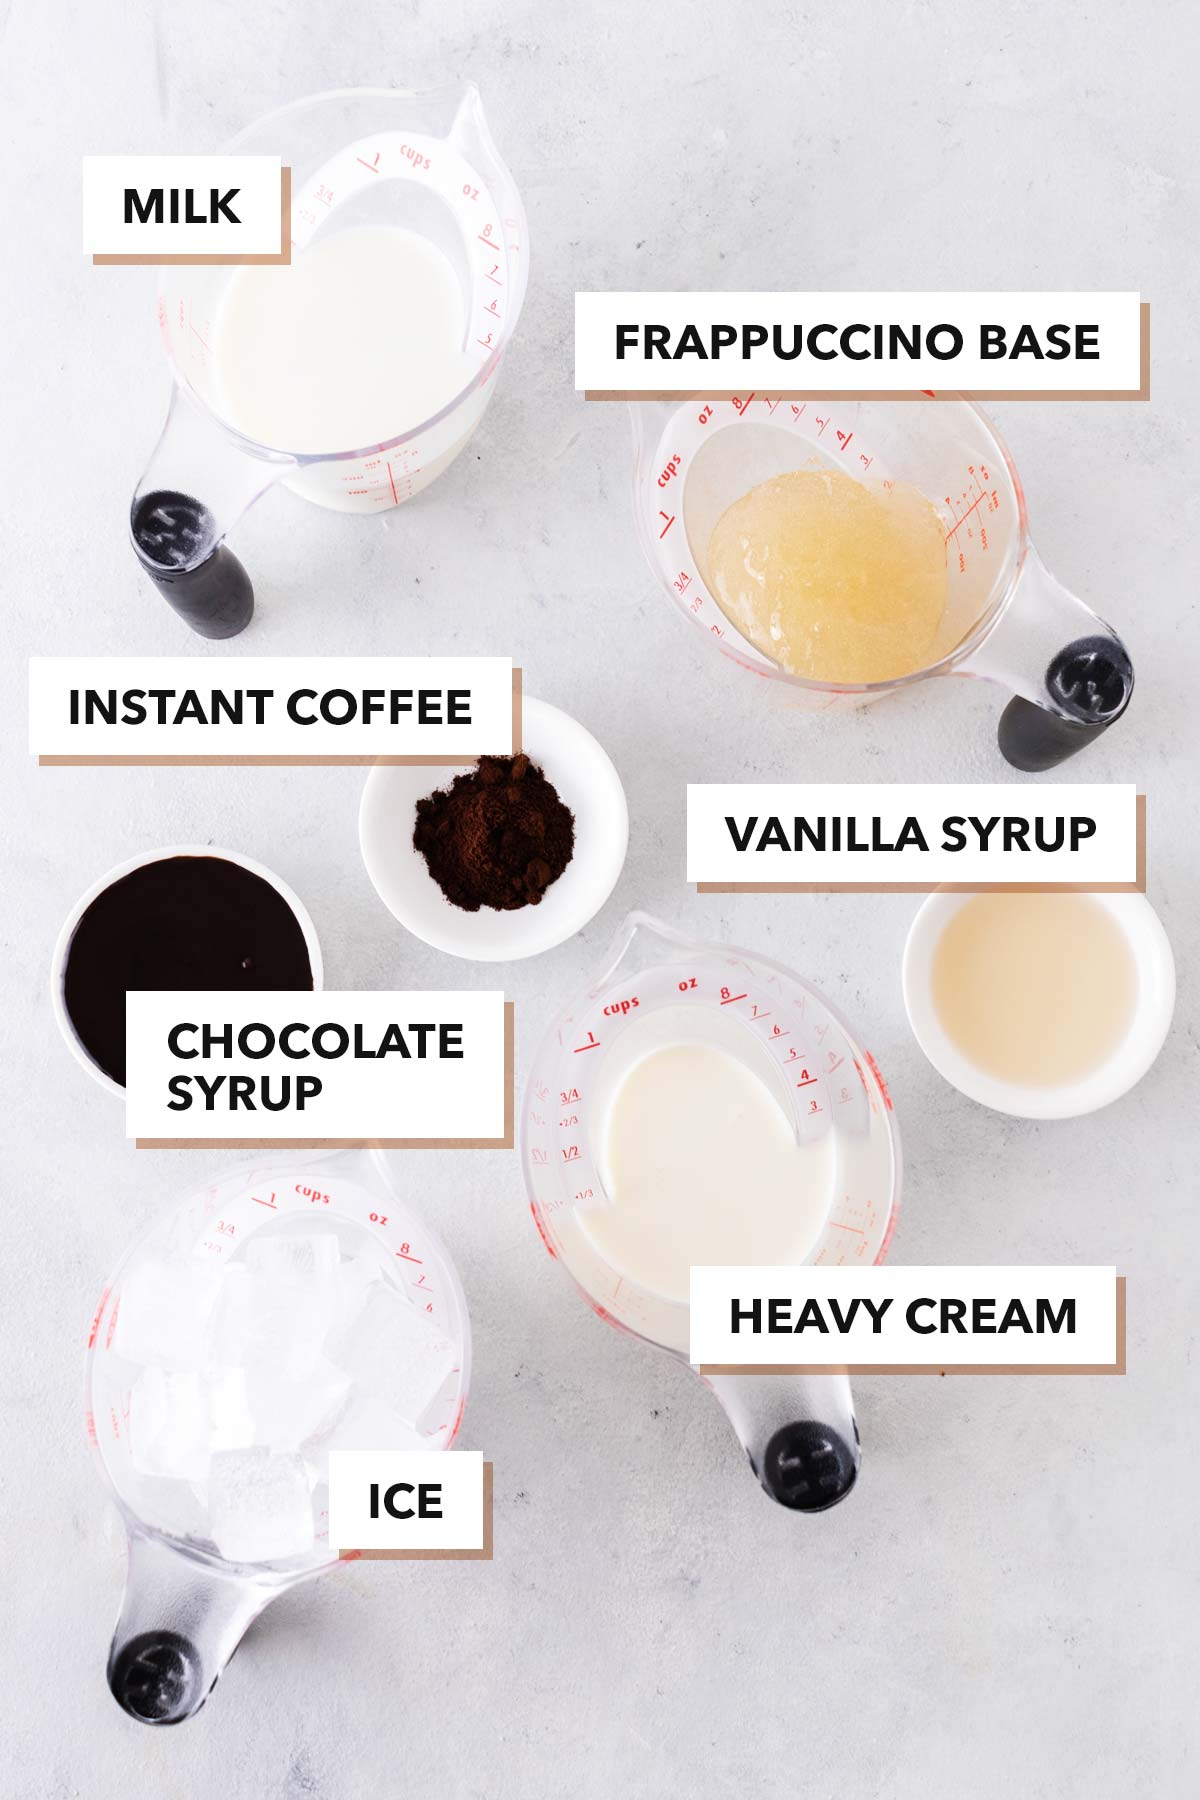 Mocha Frappuccino ingredients.